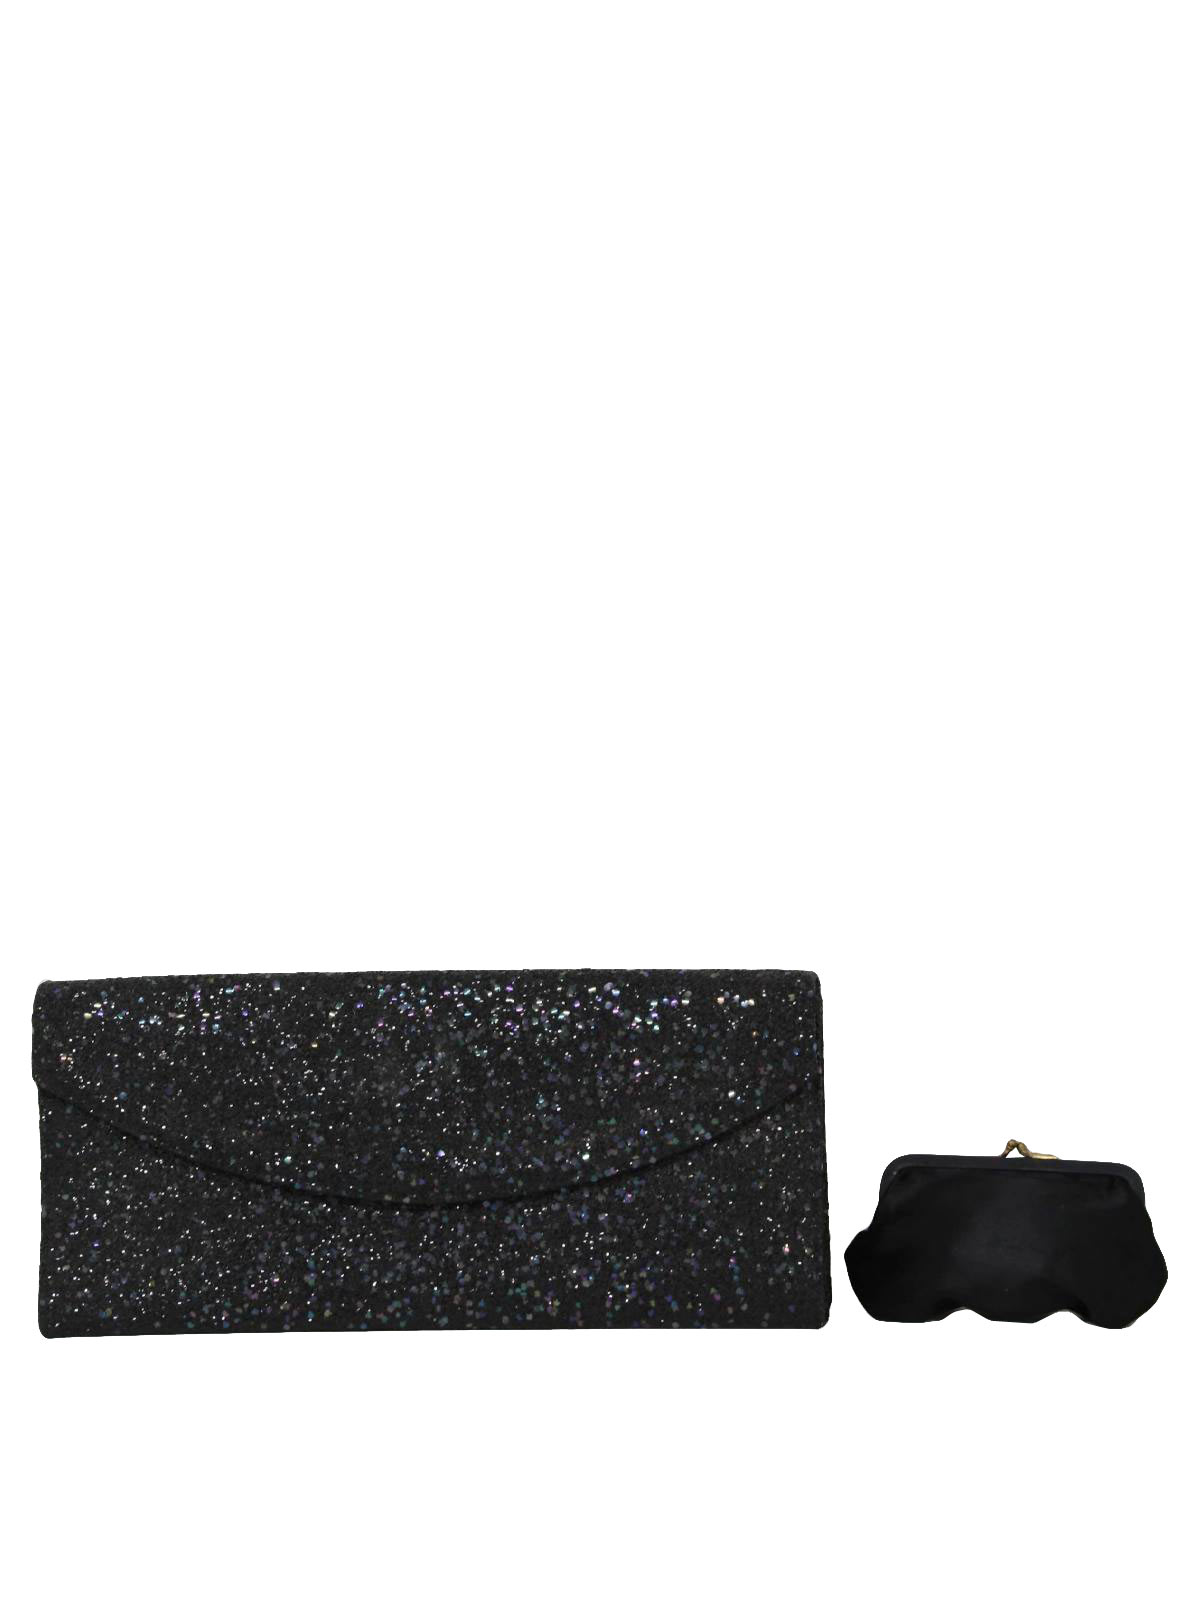 lennox bags vintage. 50s retro pin: early -lennox bags- womens black shimmery textured evening style clutch purse with single flap top envelope closure. lennox bags vintage r